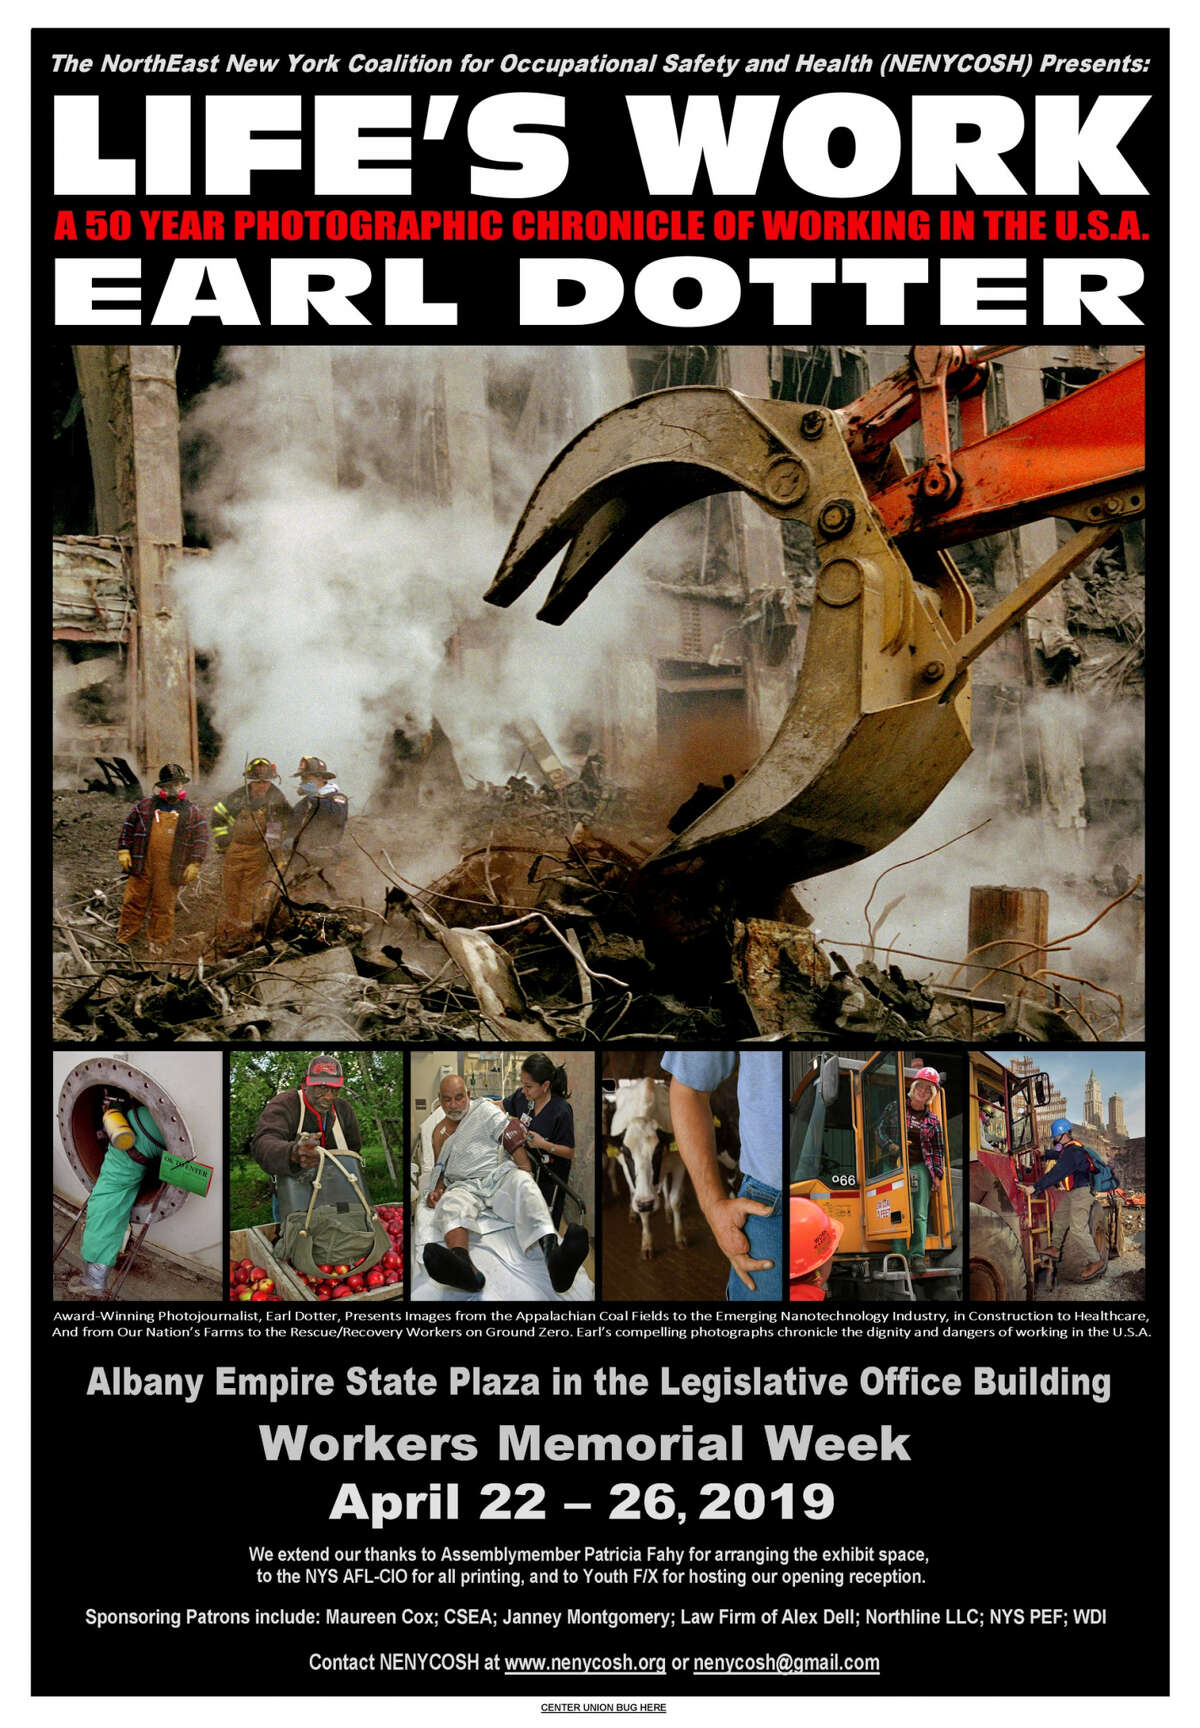 """""""Life's Work,"""" Earl Dotter's 50-year retrospective exhibit of his photojournalism documenting American workers, is coming to Albany April 22-26."""